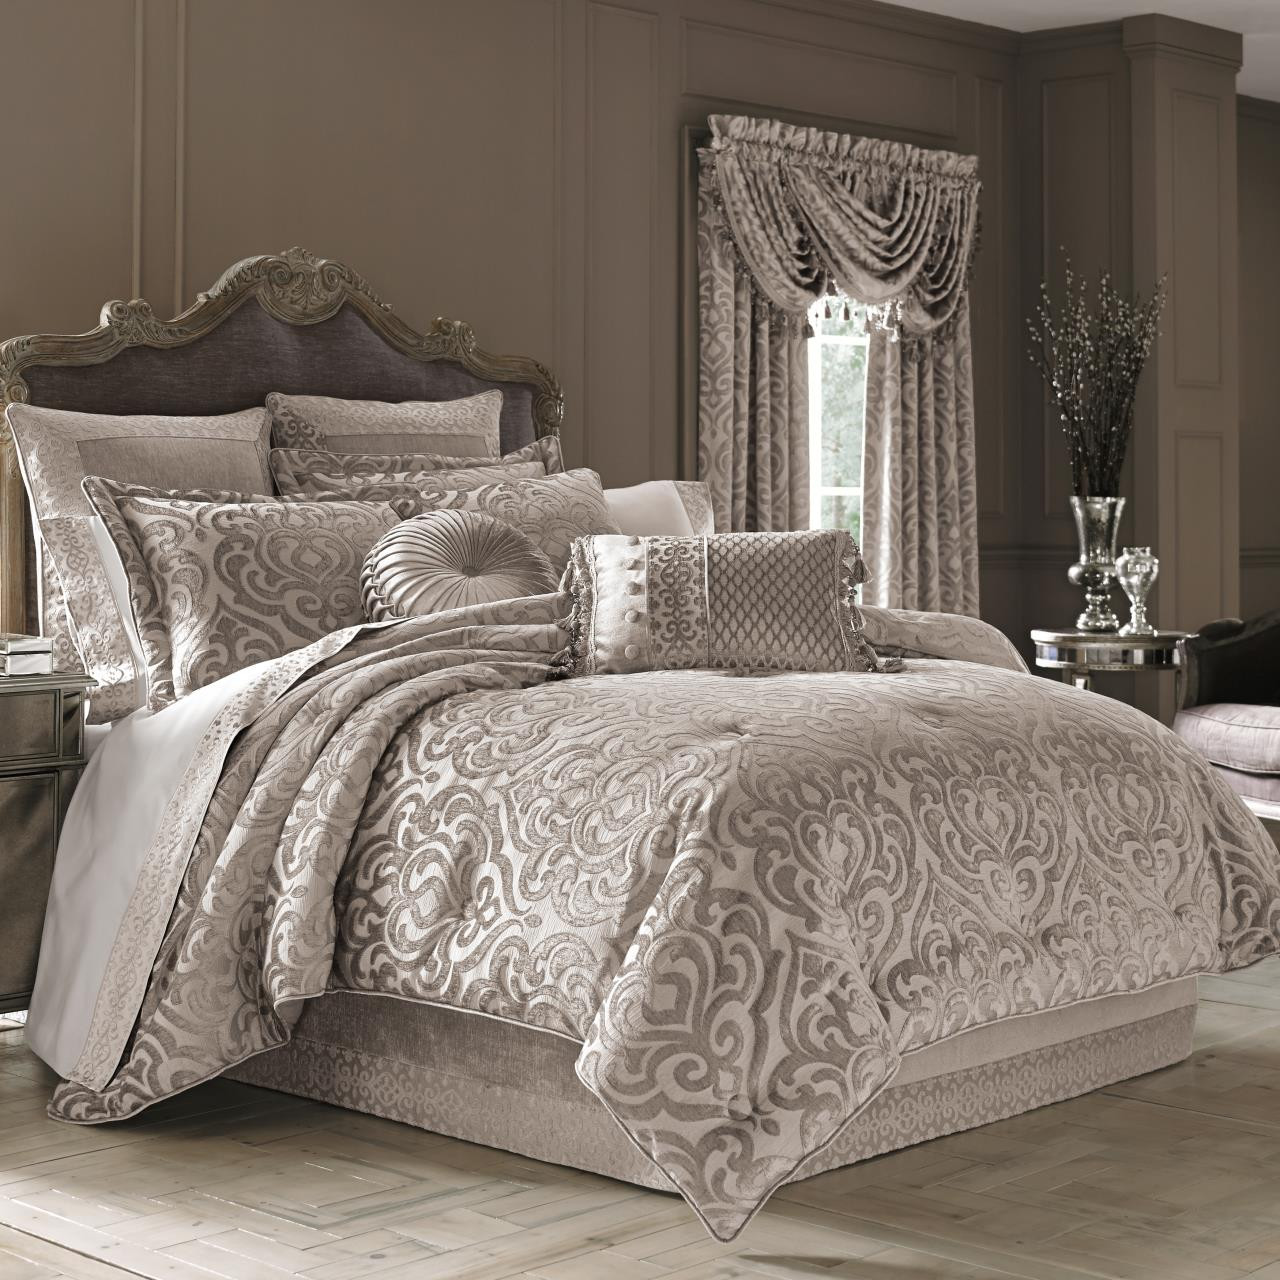 Sicily Pearl Bedding Collection -